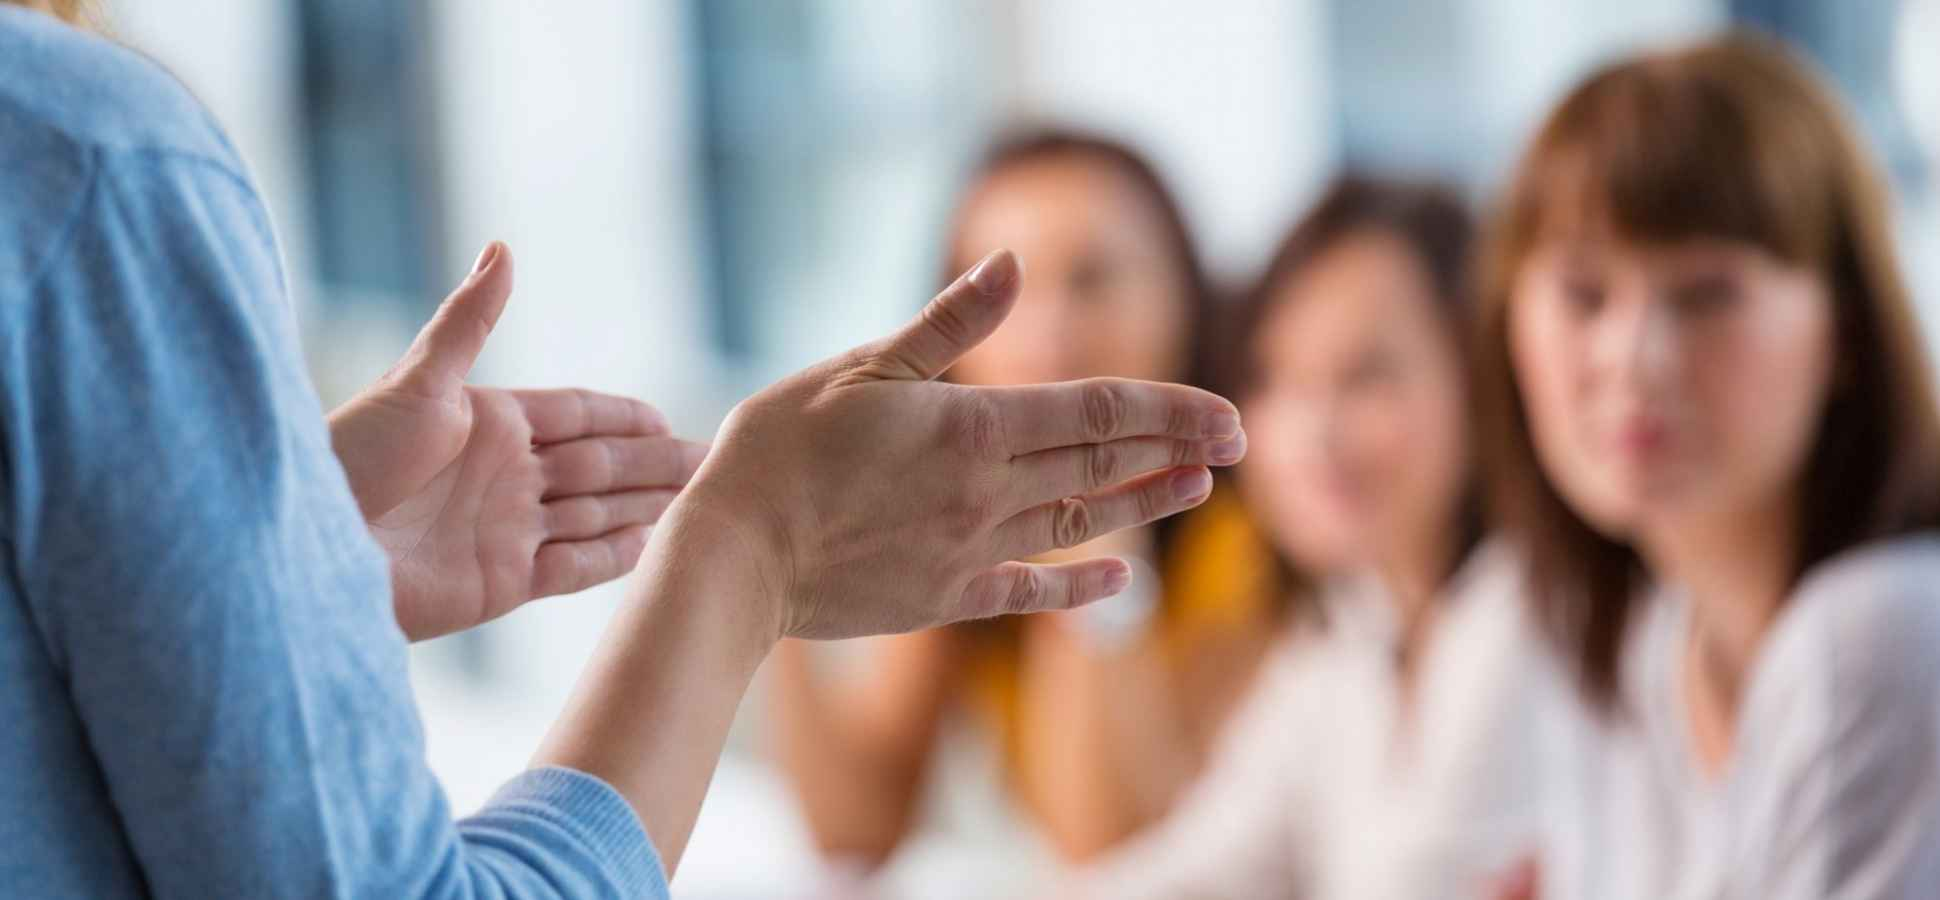 How to Become the Most Persuasive Person in the Room